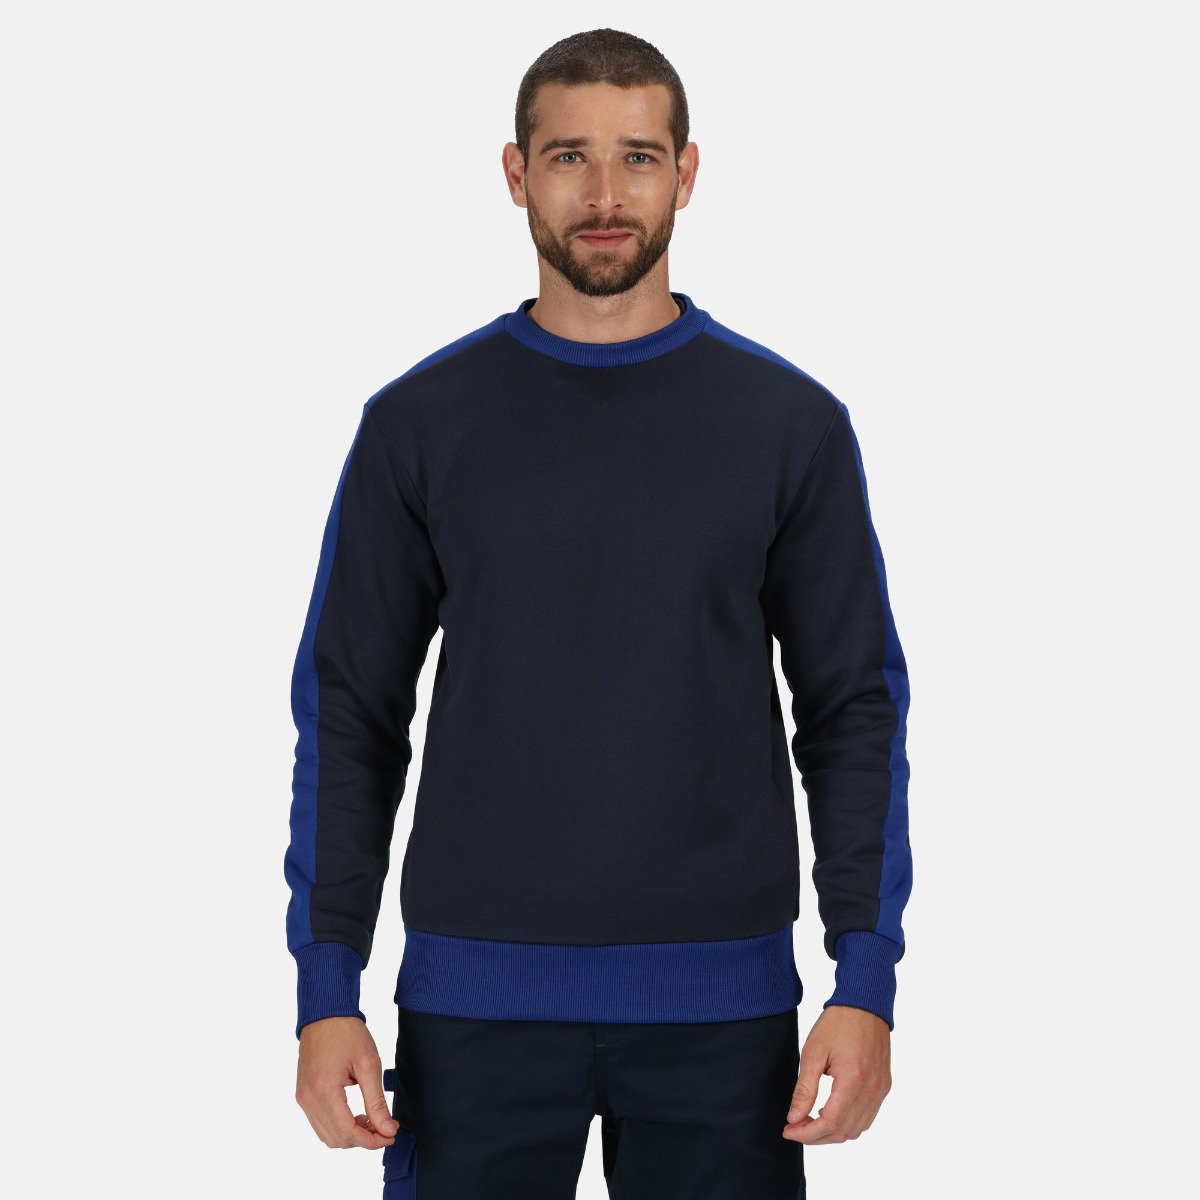 Regatta Contrast Crew Neck Sweater, Navy/New Royal, Size XL